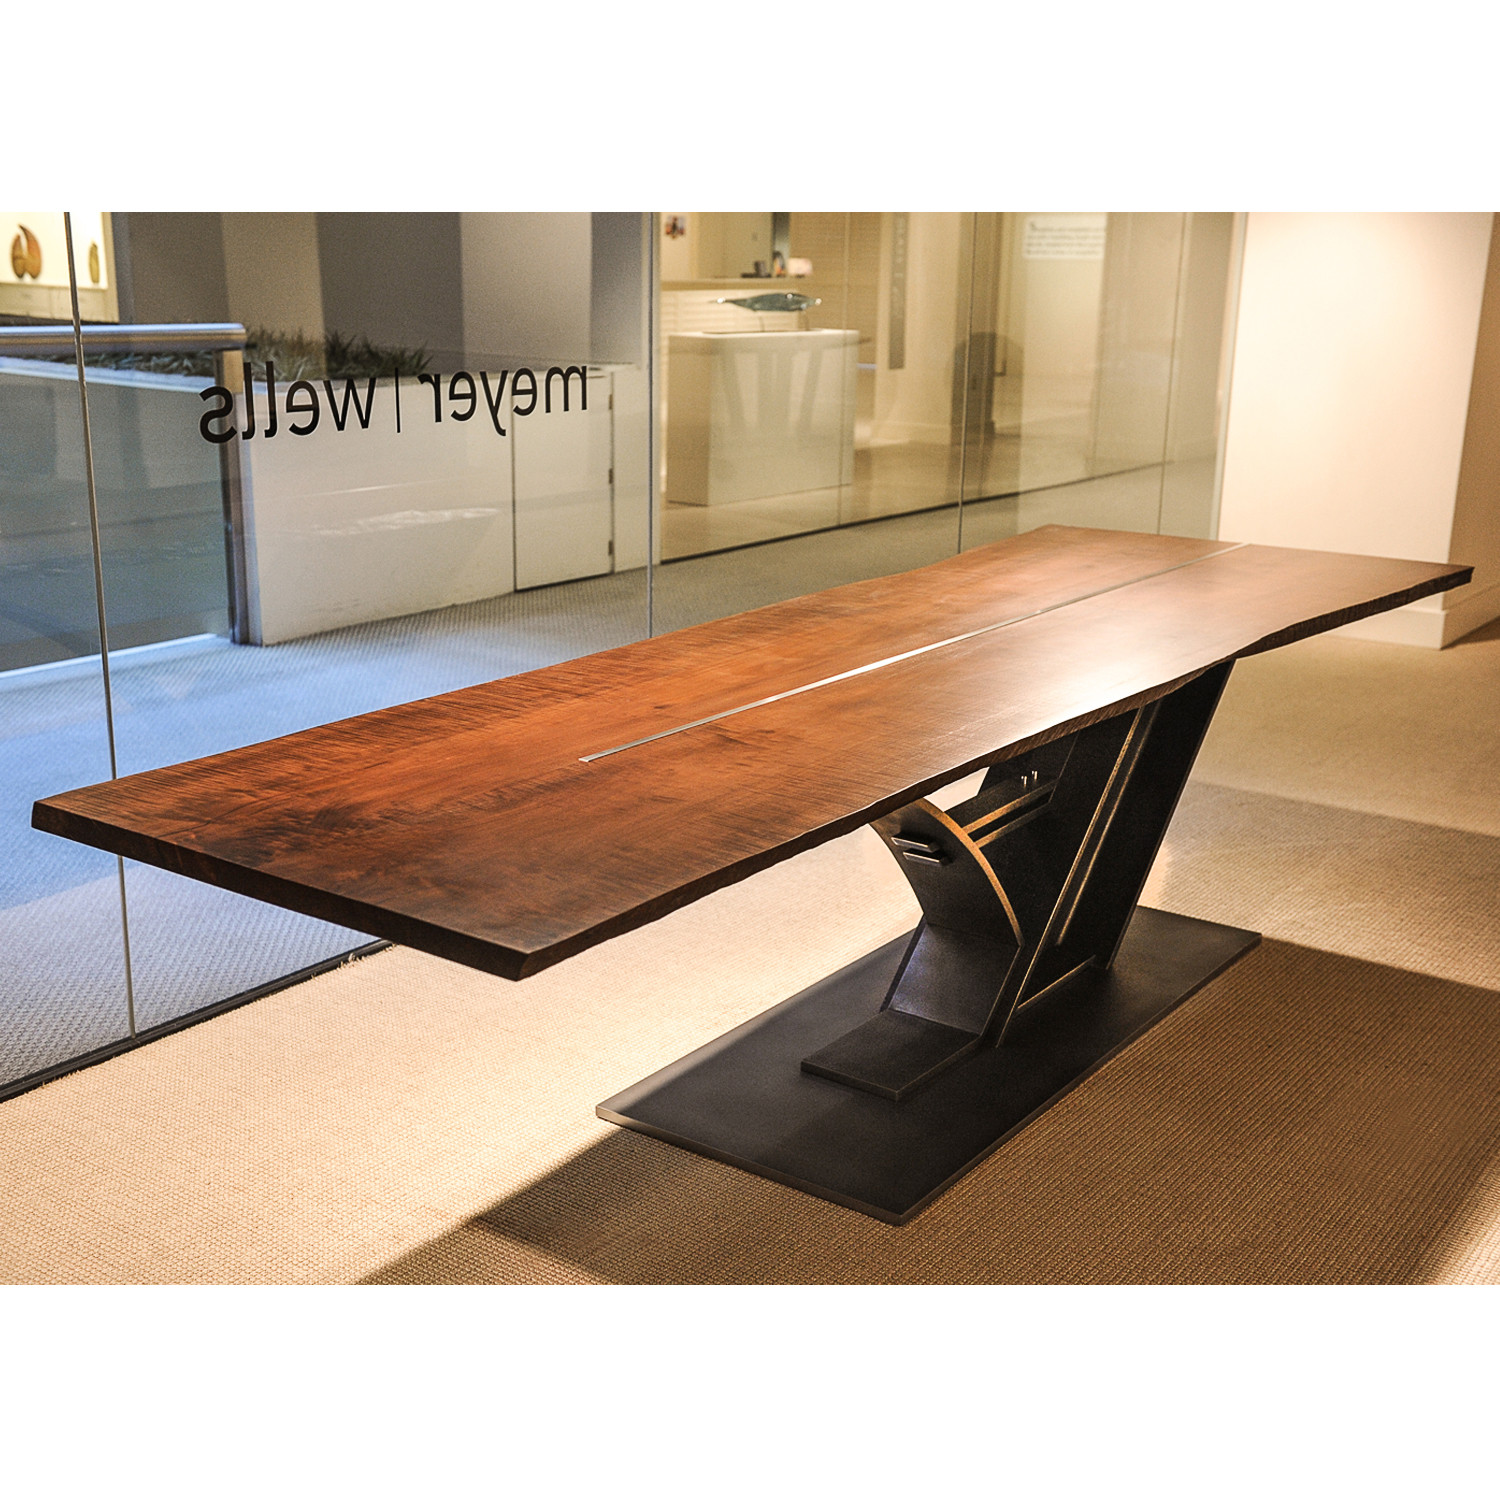 Rainier dining table meyer wells touch of modern for Dining table frame design